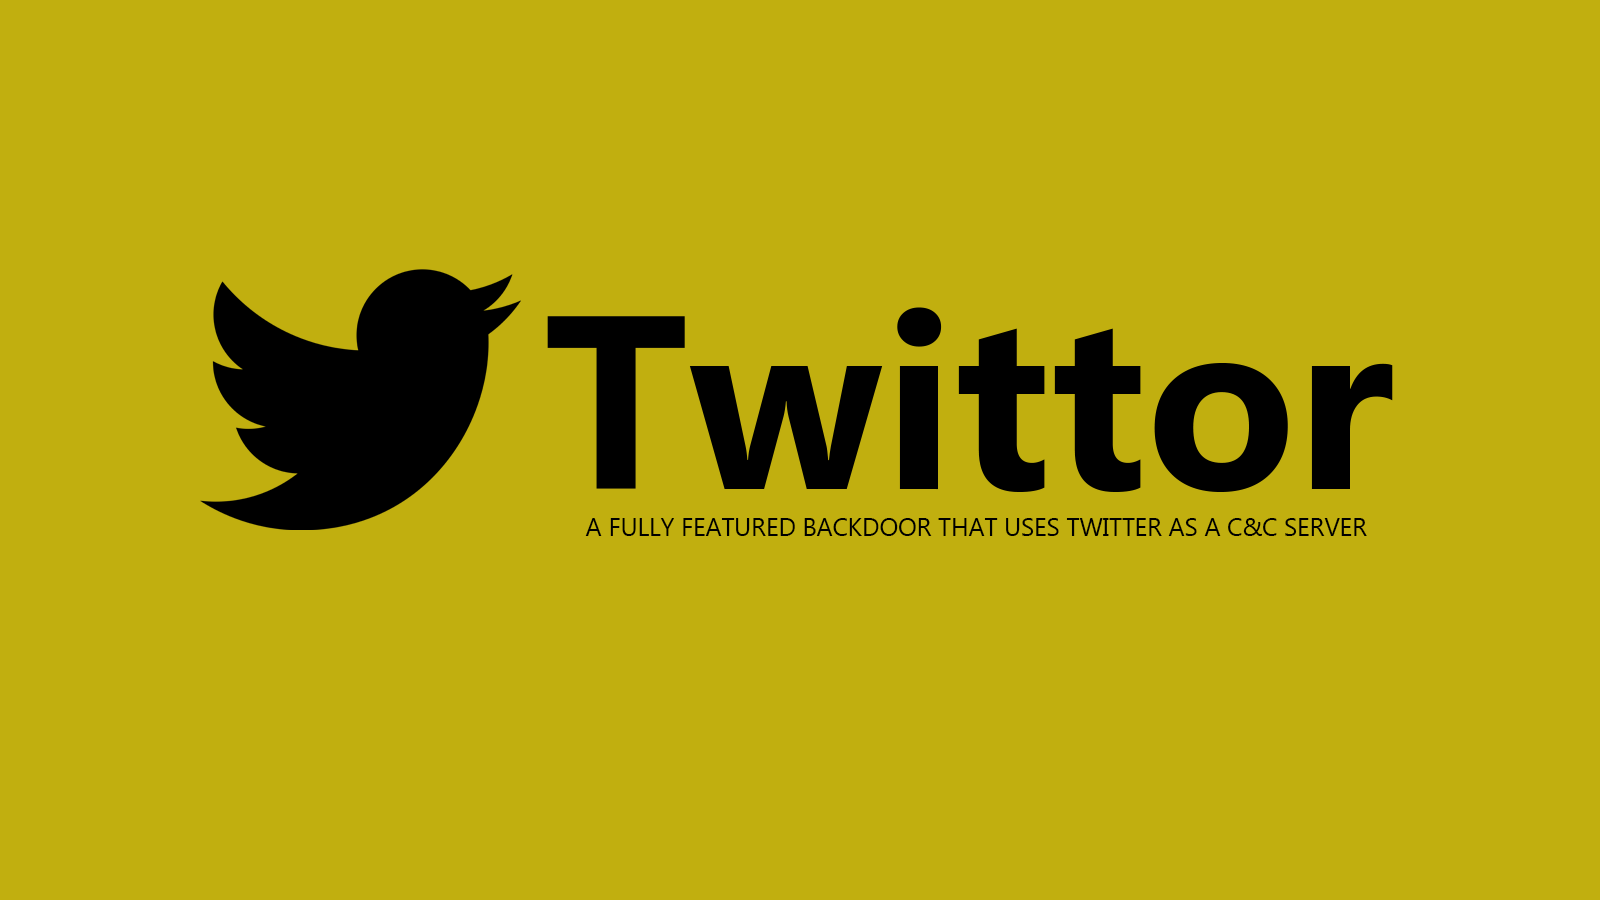 Twittor - A Fully Featured Backdoor that Uses Twitter As a C&C Server